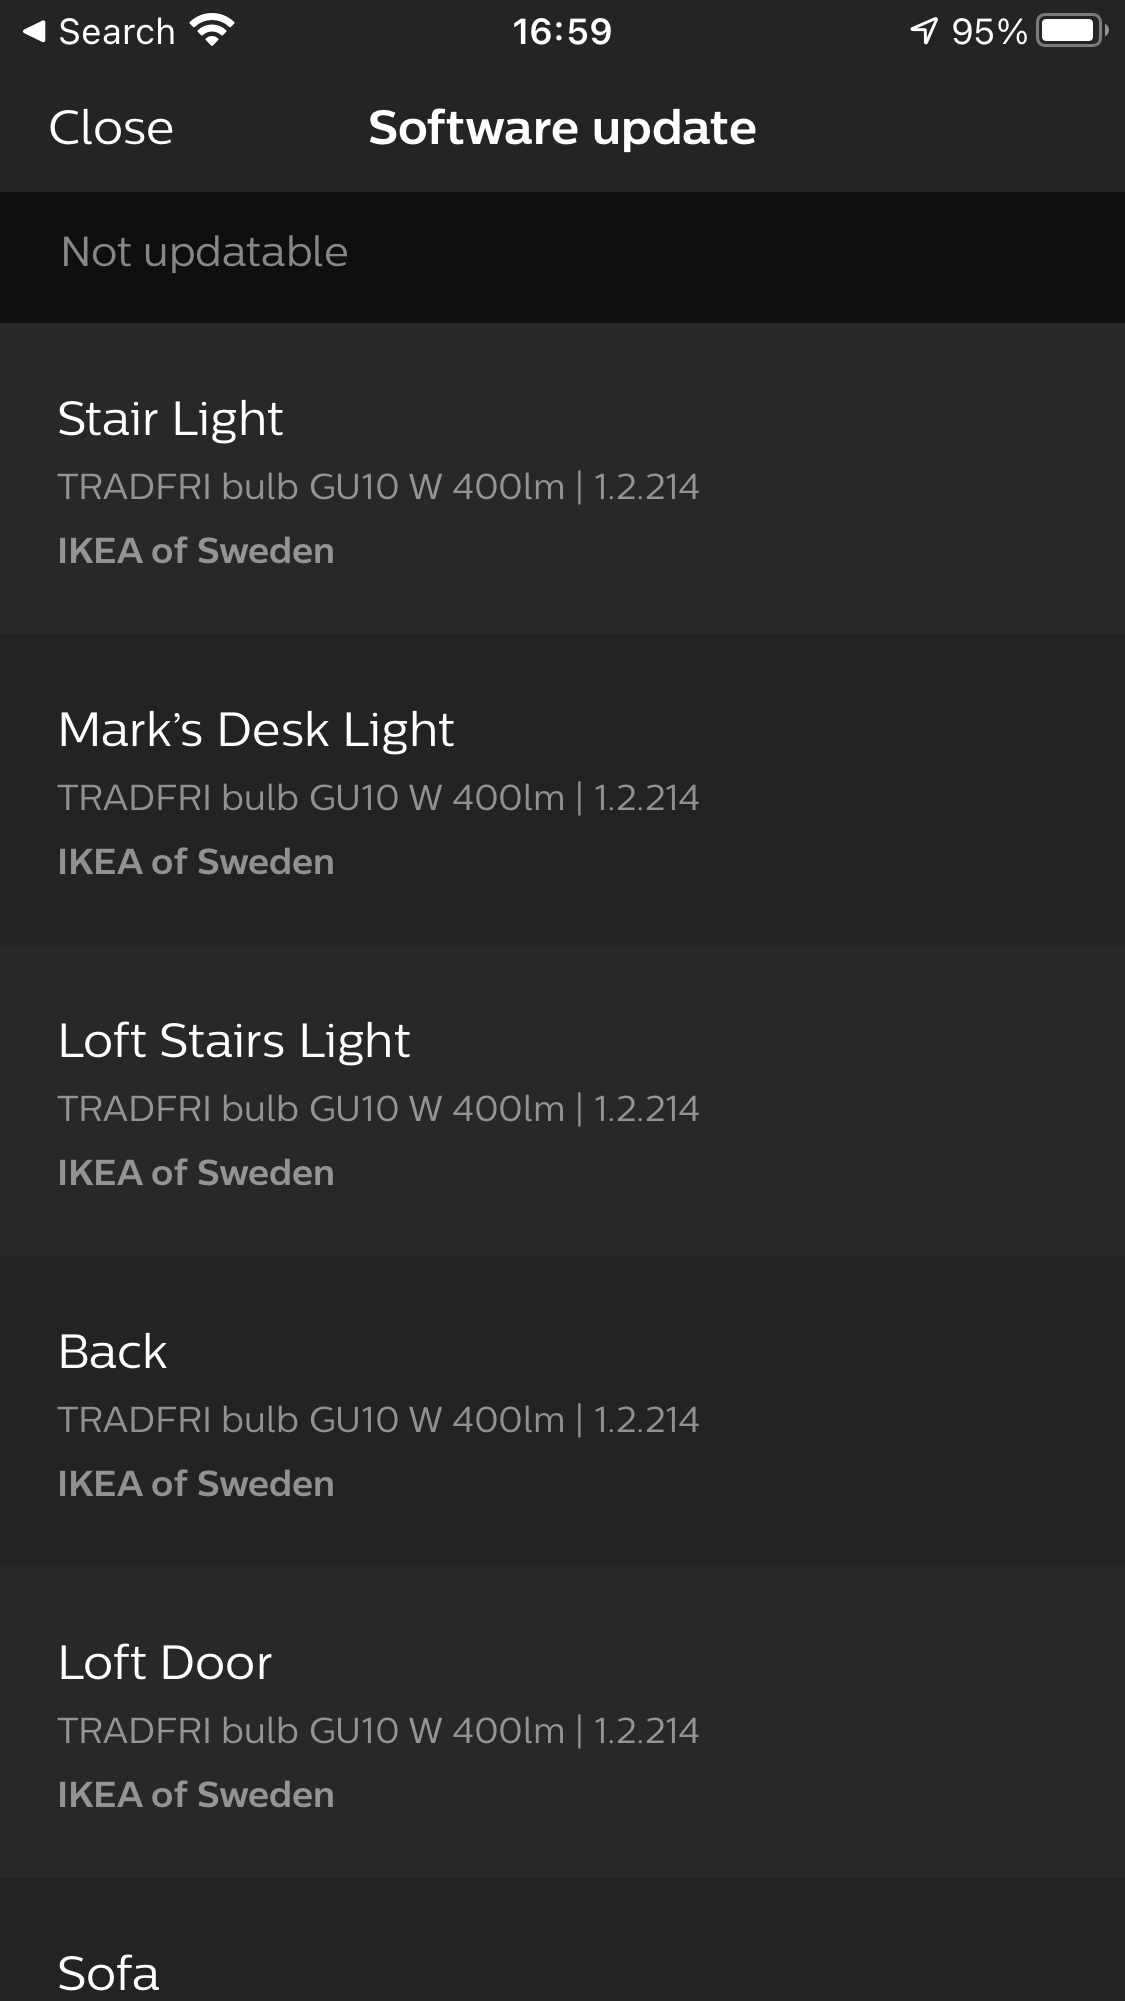 Software update in the Philips Hue app (Ikea Trådfri bulbs)